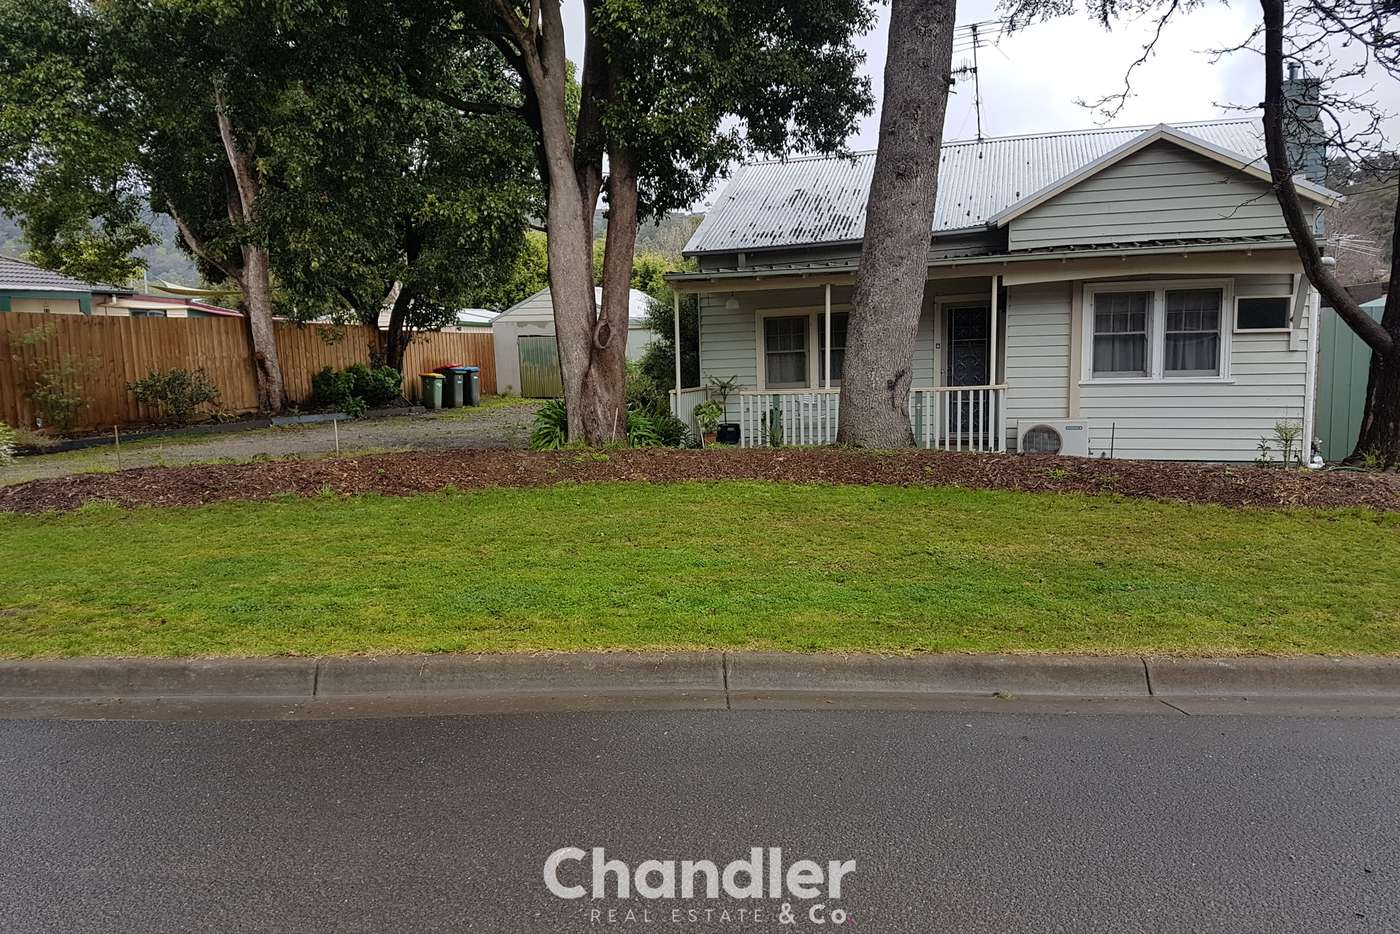 Main view of Homely house listing, 11 William Street, Upper Ferntree Gully VIC 3156